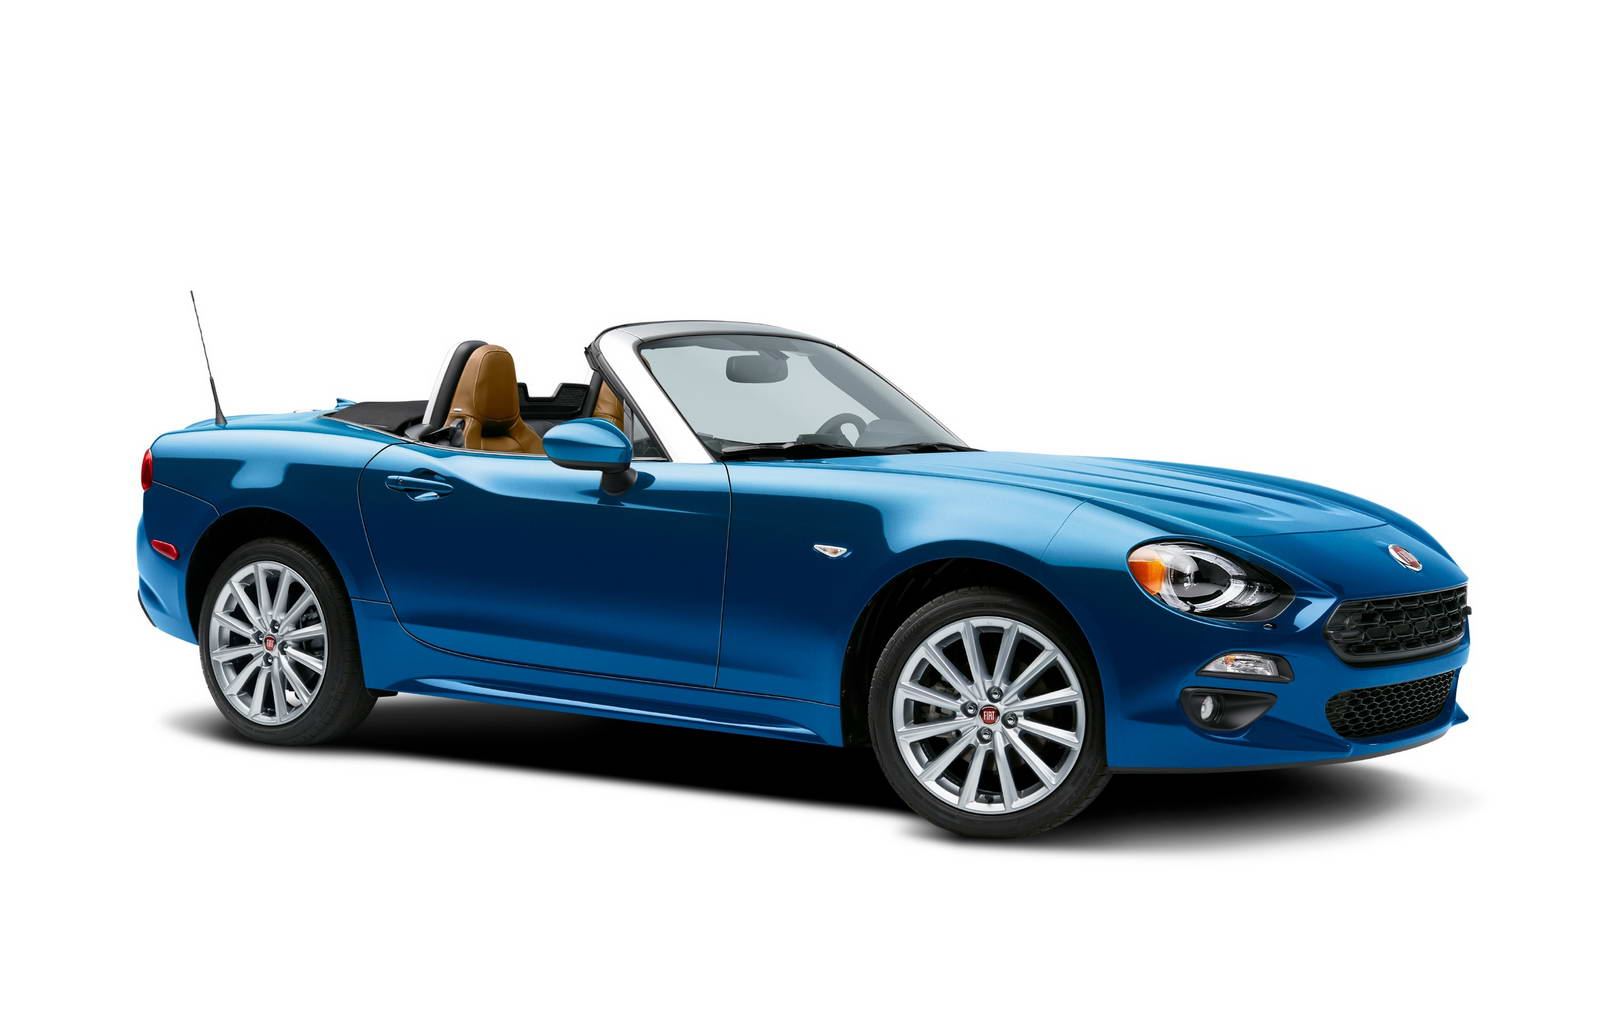 kar n zda 2016 yeni fiat 124 spider oto kokpit. Black Bedroom Furniture Sets. Home Design Ideas